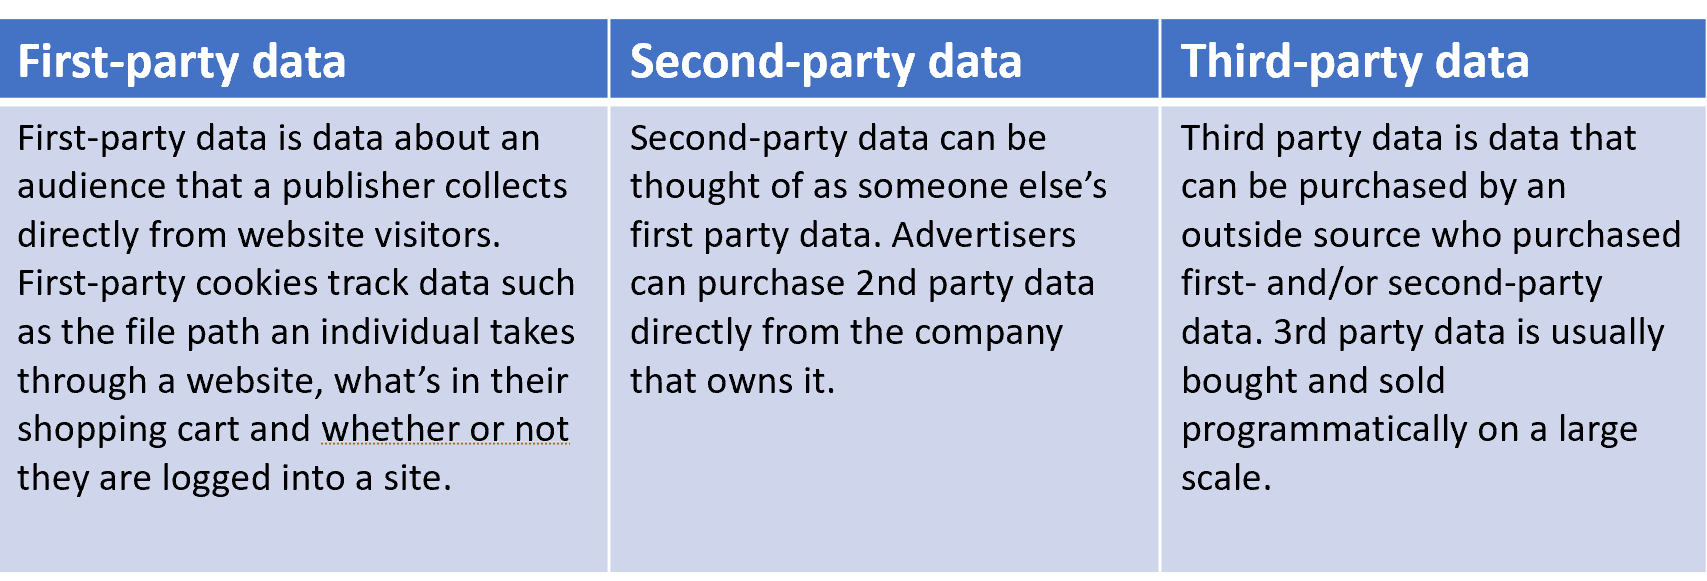 First, second and third-party data comparison chart